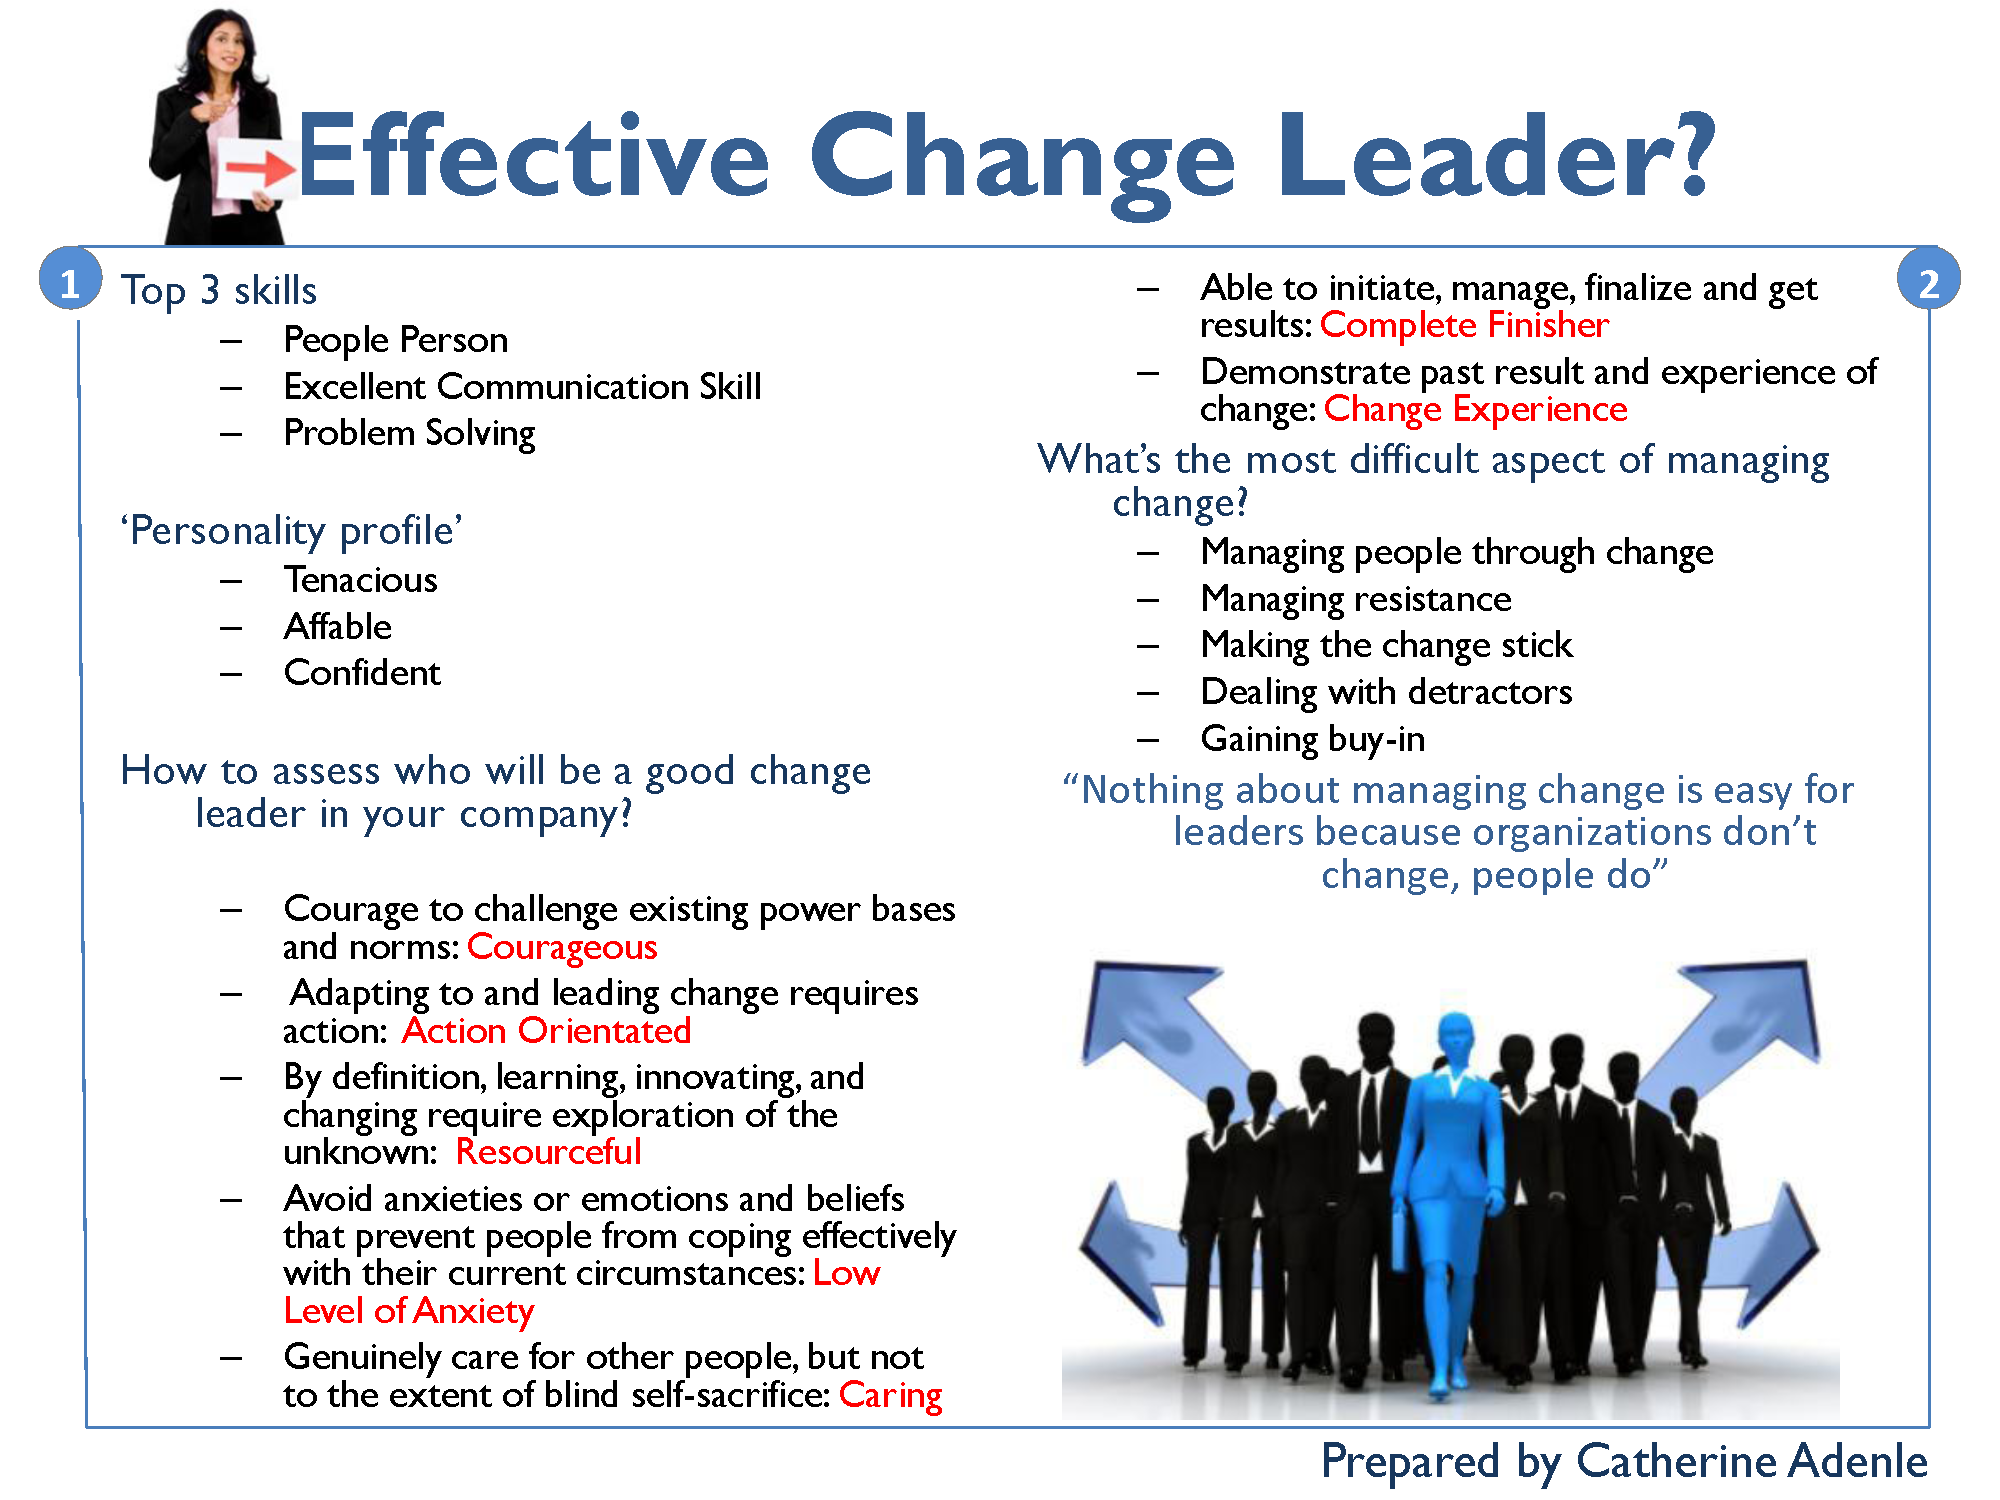 Want an effective change leader?